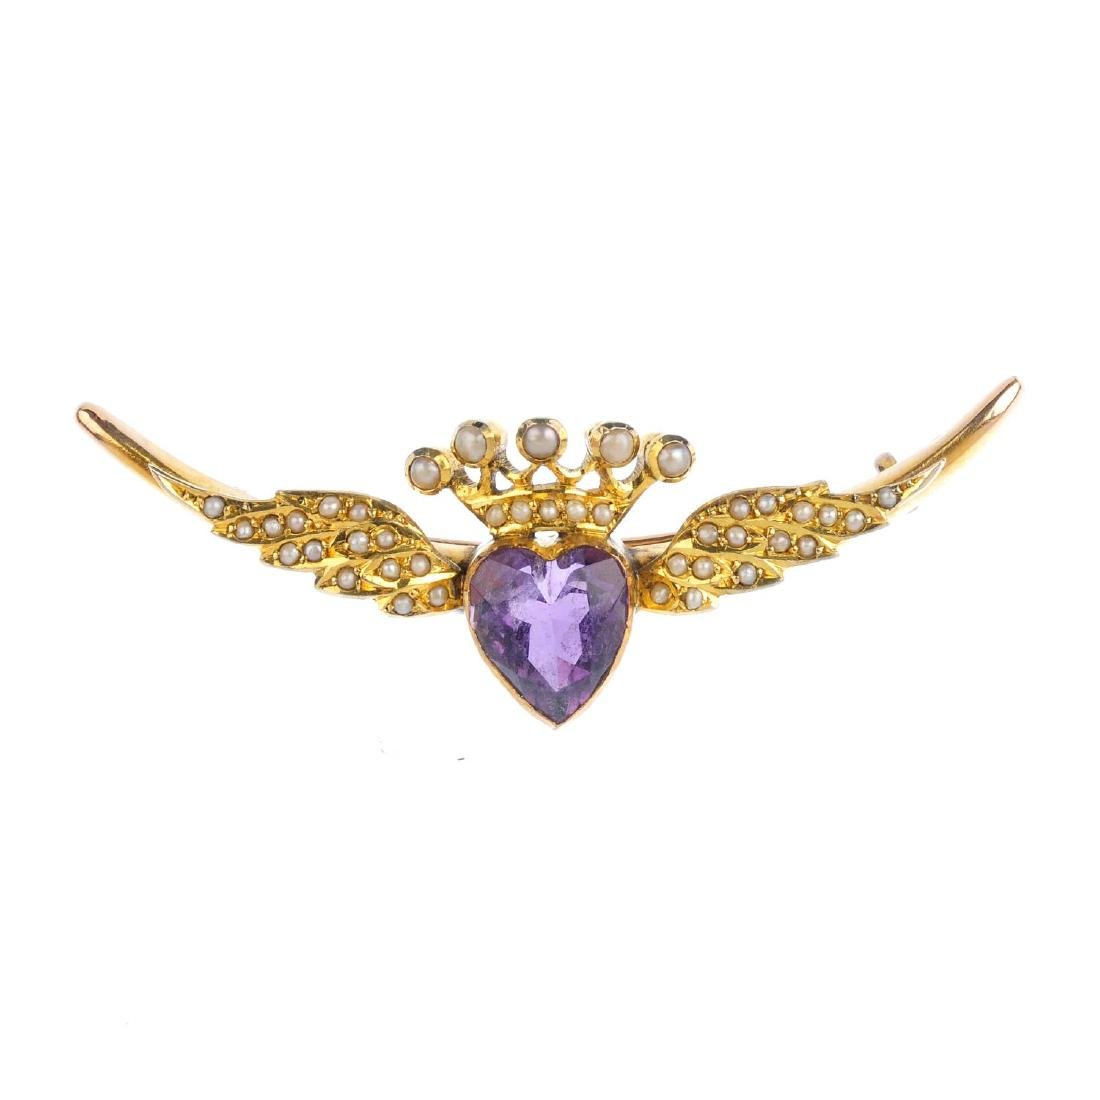 An Edwardian gold amethyst and split pearl brooch. The